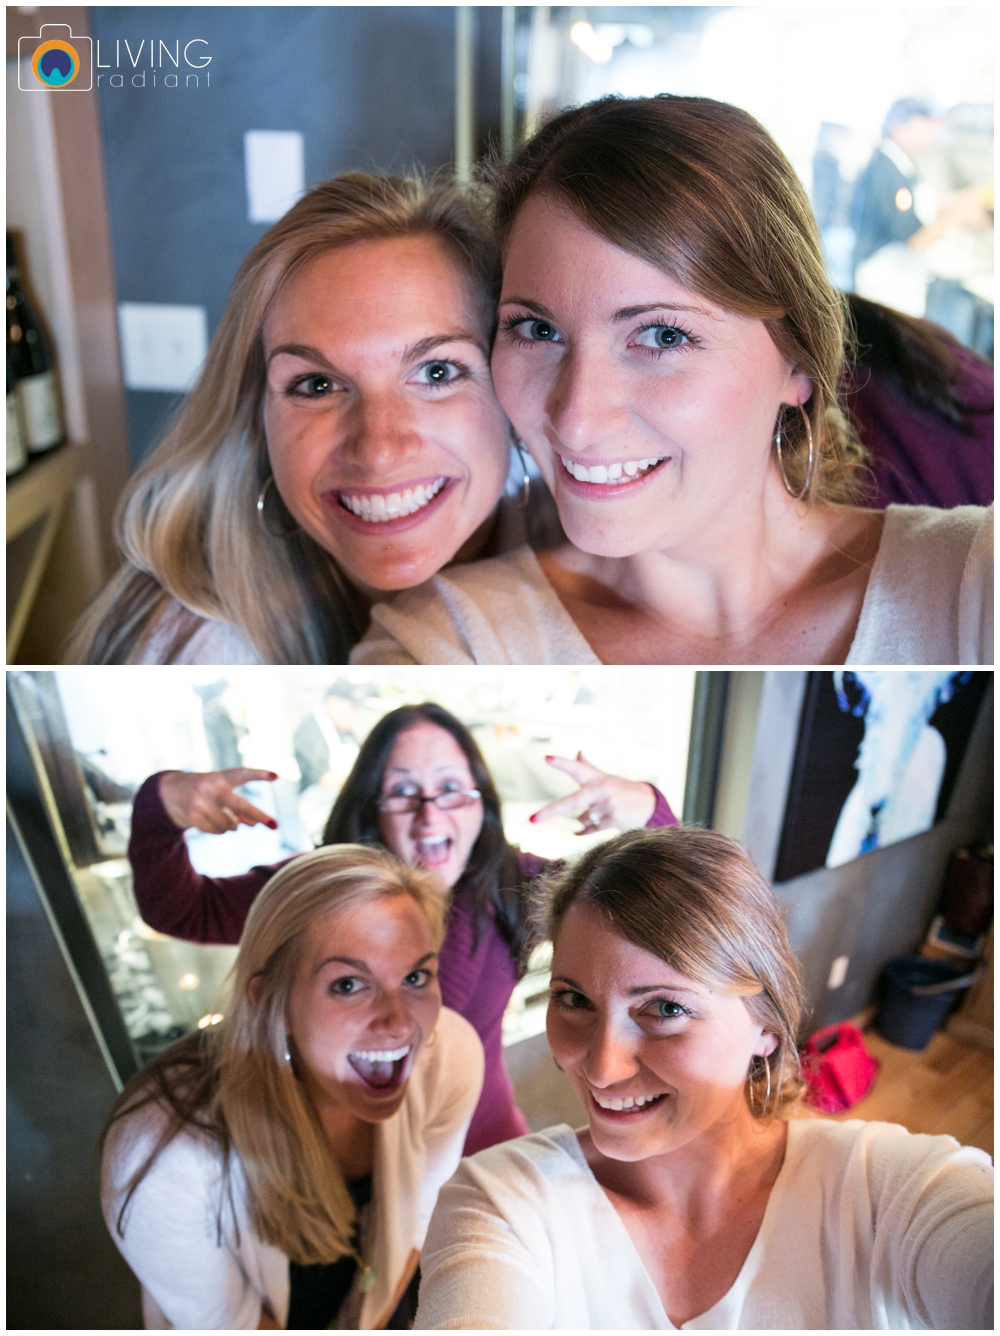 krissys-bridesmaid-luncheon-the-blue-goat-richmond-virginia-living-radiant-photography_0006.jpg